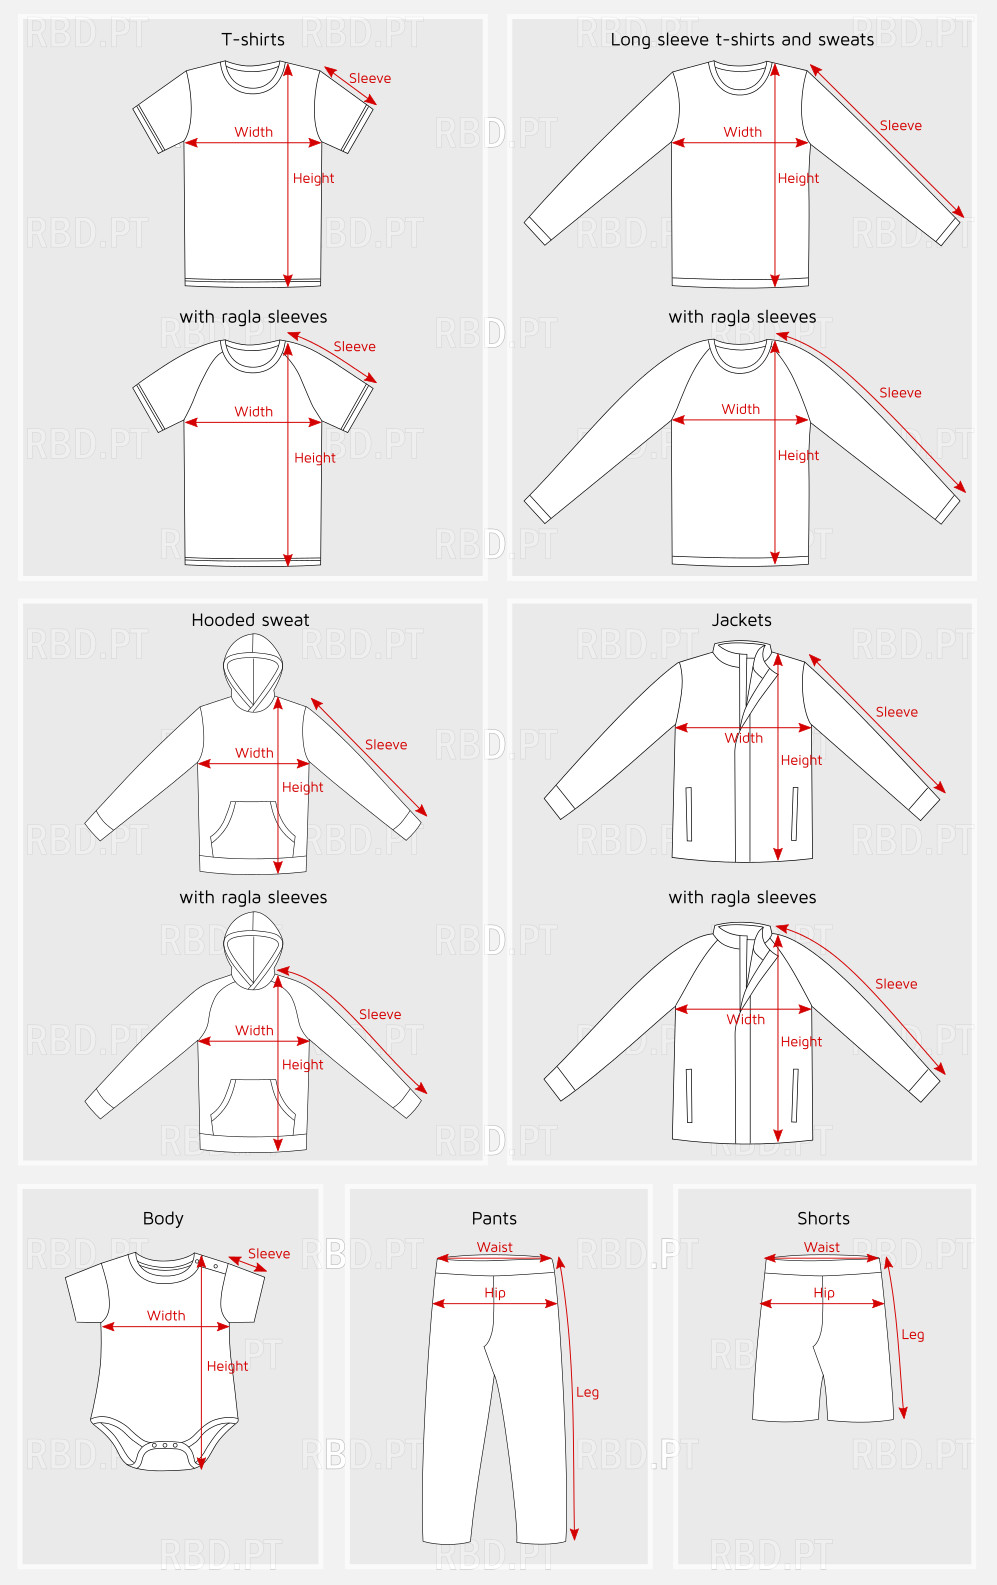 How you can measure the different types of clothing